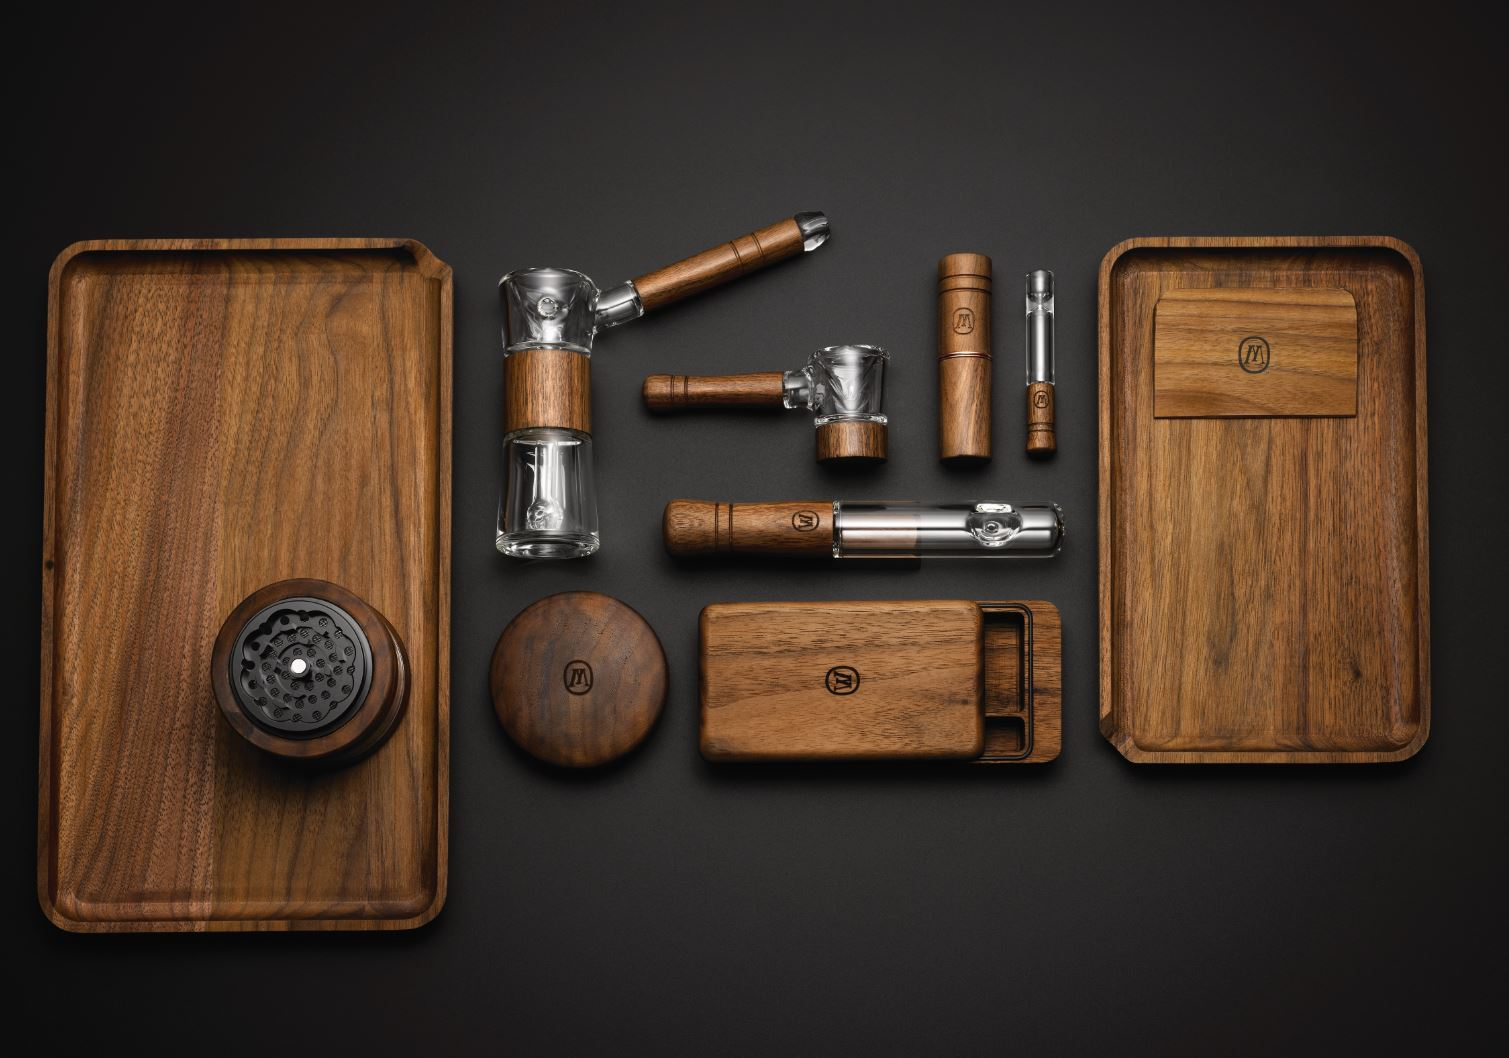 Balancing intuitive design with Jamaican-inspired accents, Marley Natural's collection of smoking, storage and preparation accessories feature products made from sustainably grown American Black Walnut wood and heat-resistant, hand-blown glass.(Photo: Business Wire)